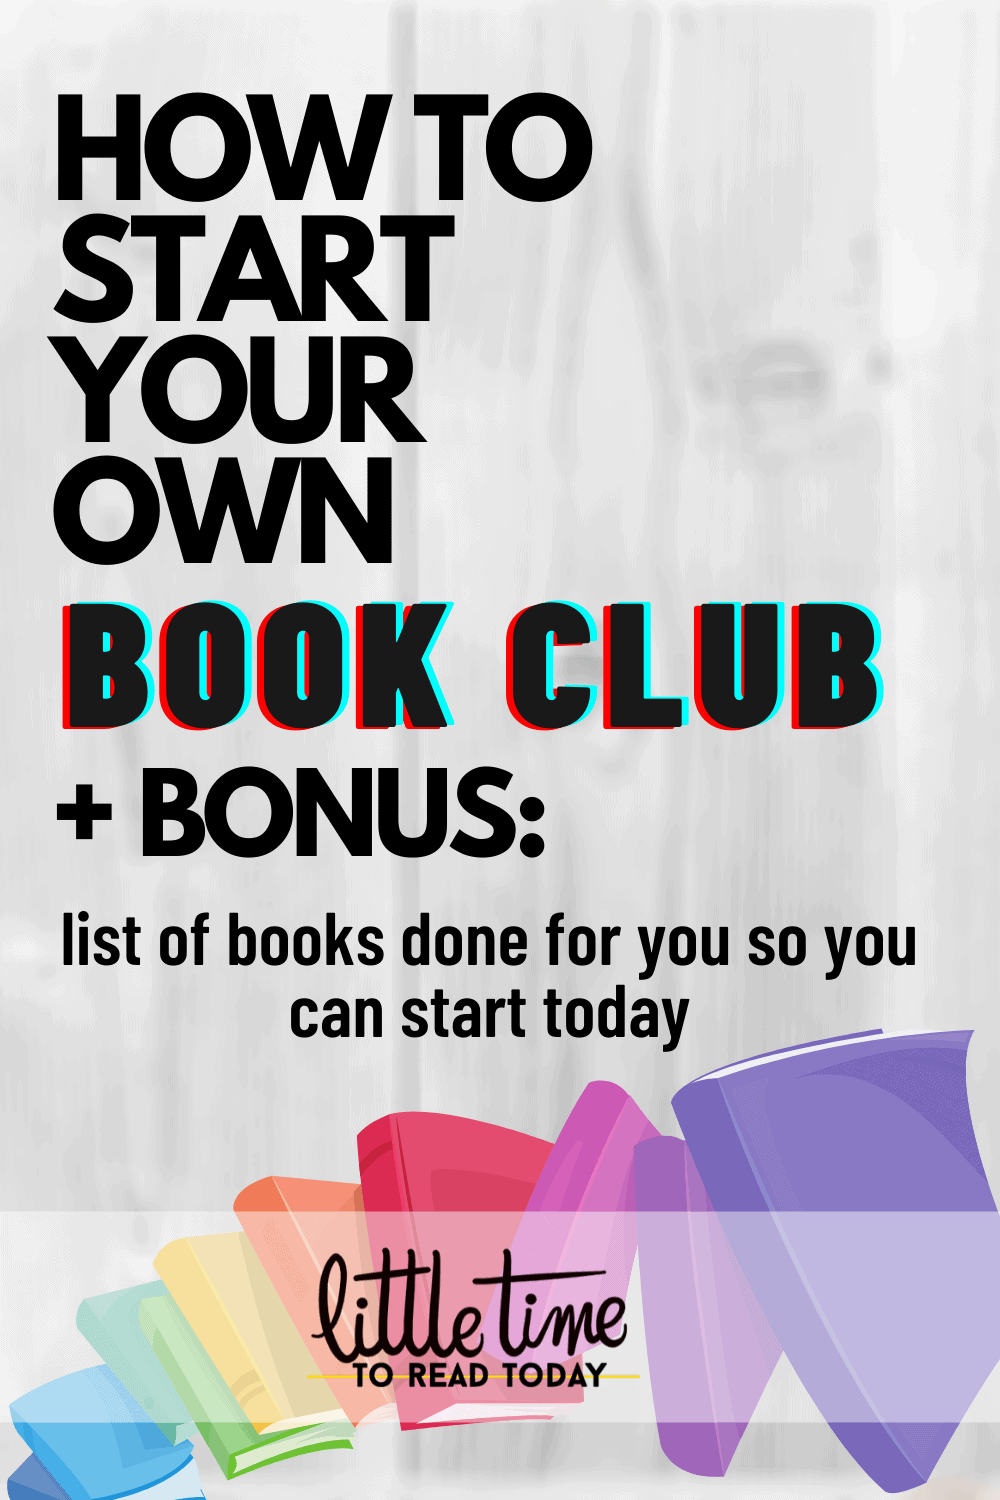 Start your online book club today